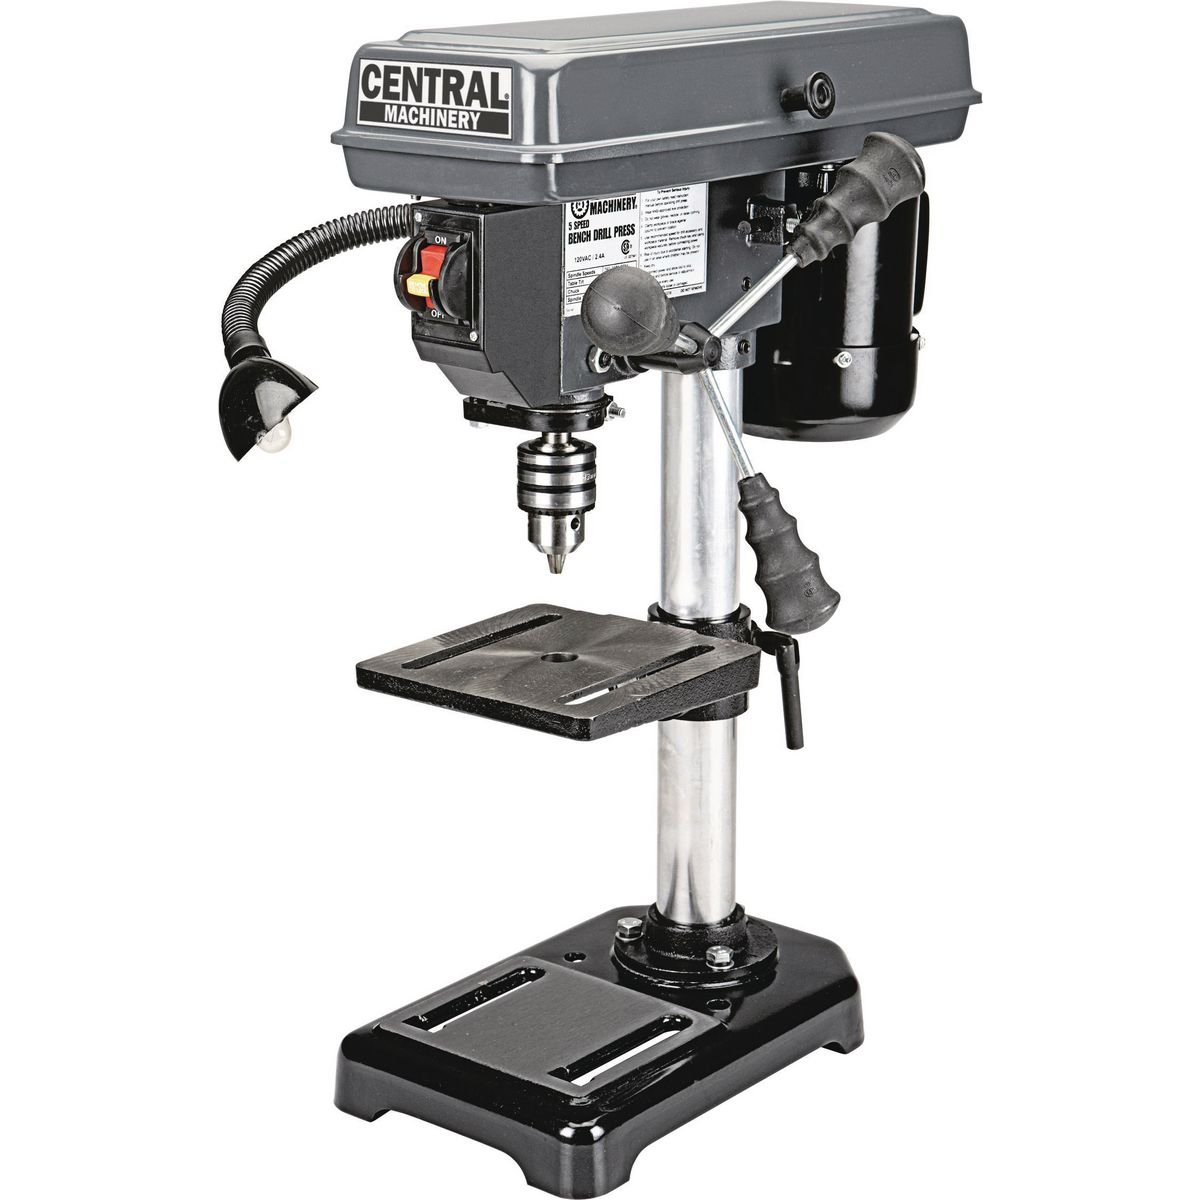 8 in 5 speed bench drill press